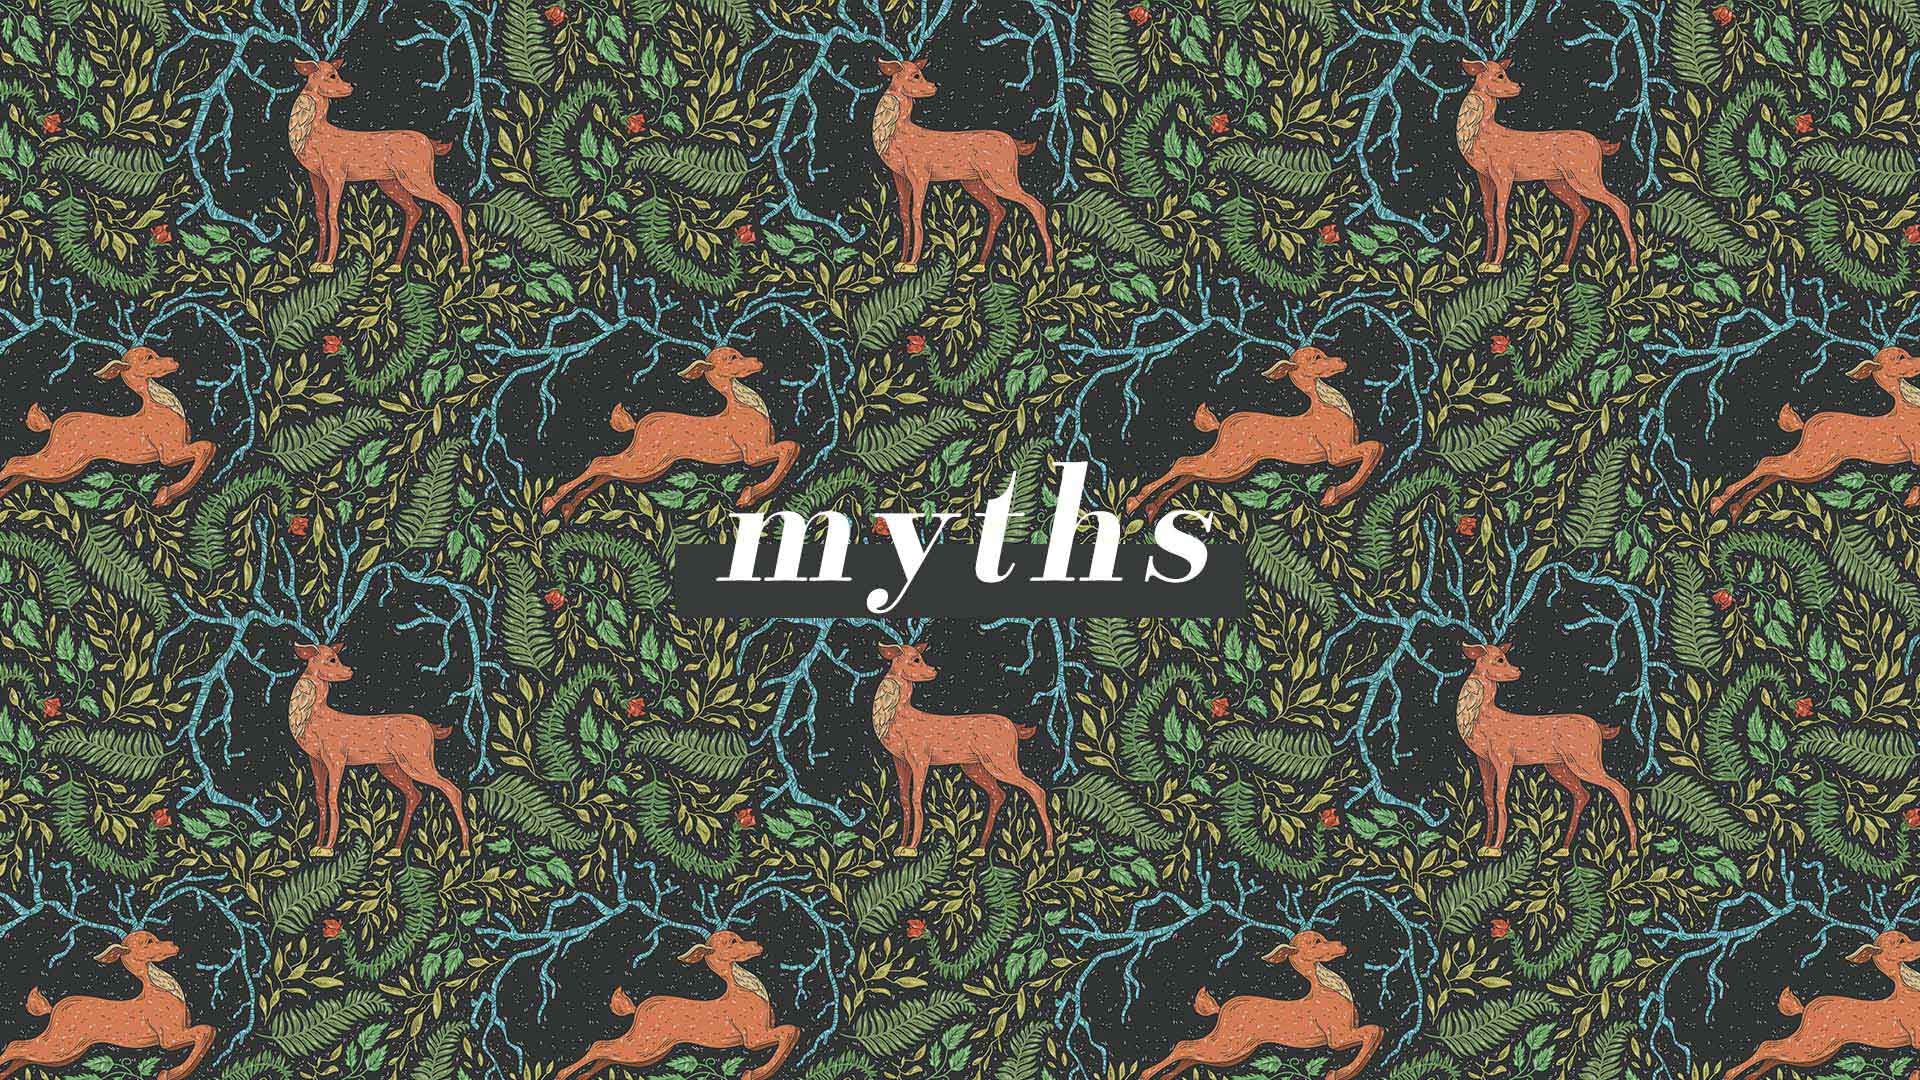 Series: Myths